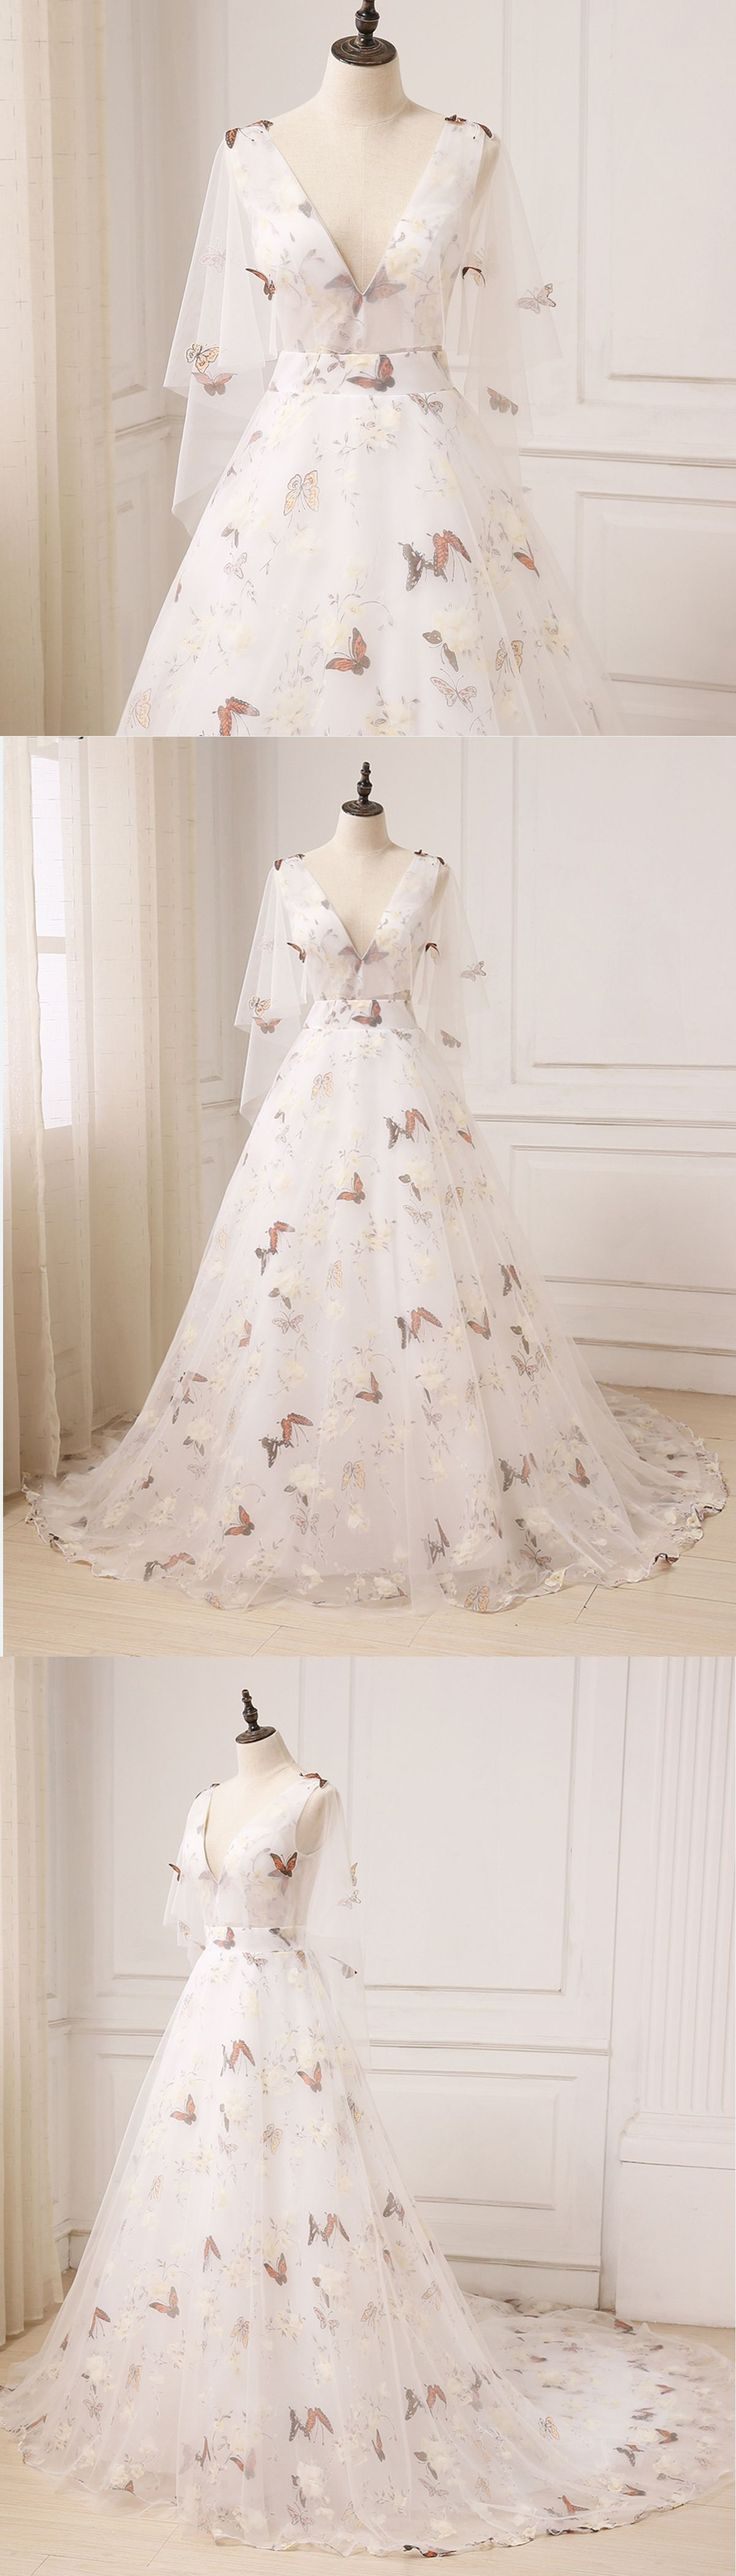 64 Best Rochii Images On Pinterest Evening Gowns Party Wear Jolie Clothing Aftan Dress Unique Ivory Floral Print Tulle Long V Neck Sweet 16 Prom With Sleeves